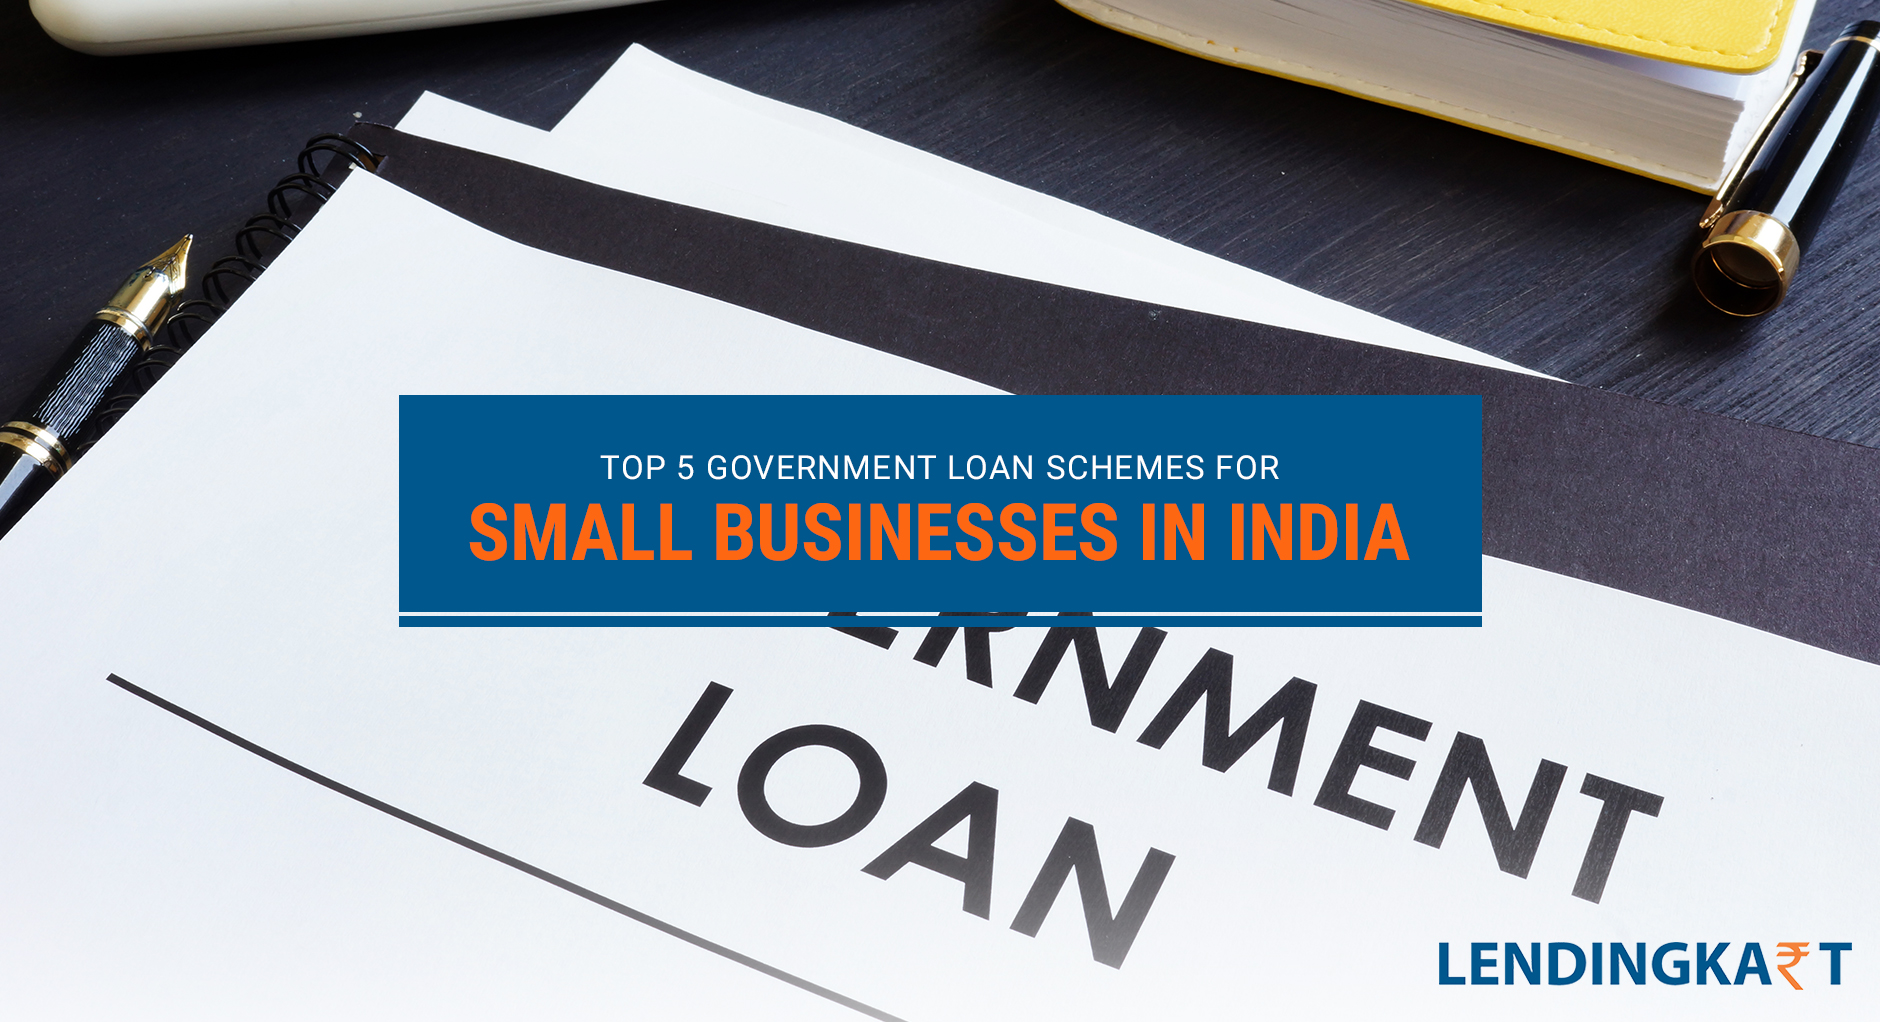 Government Loan Schemes for Small Businesses